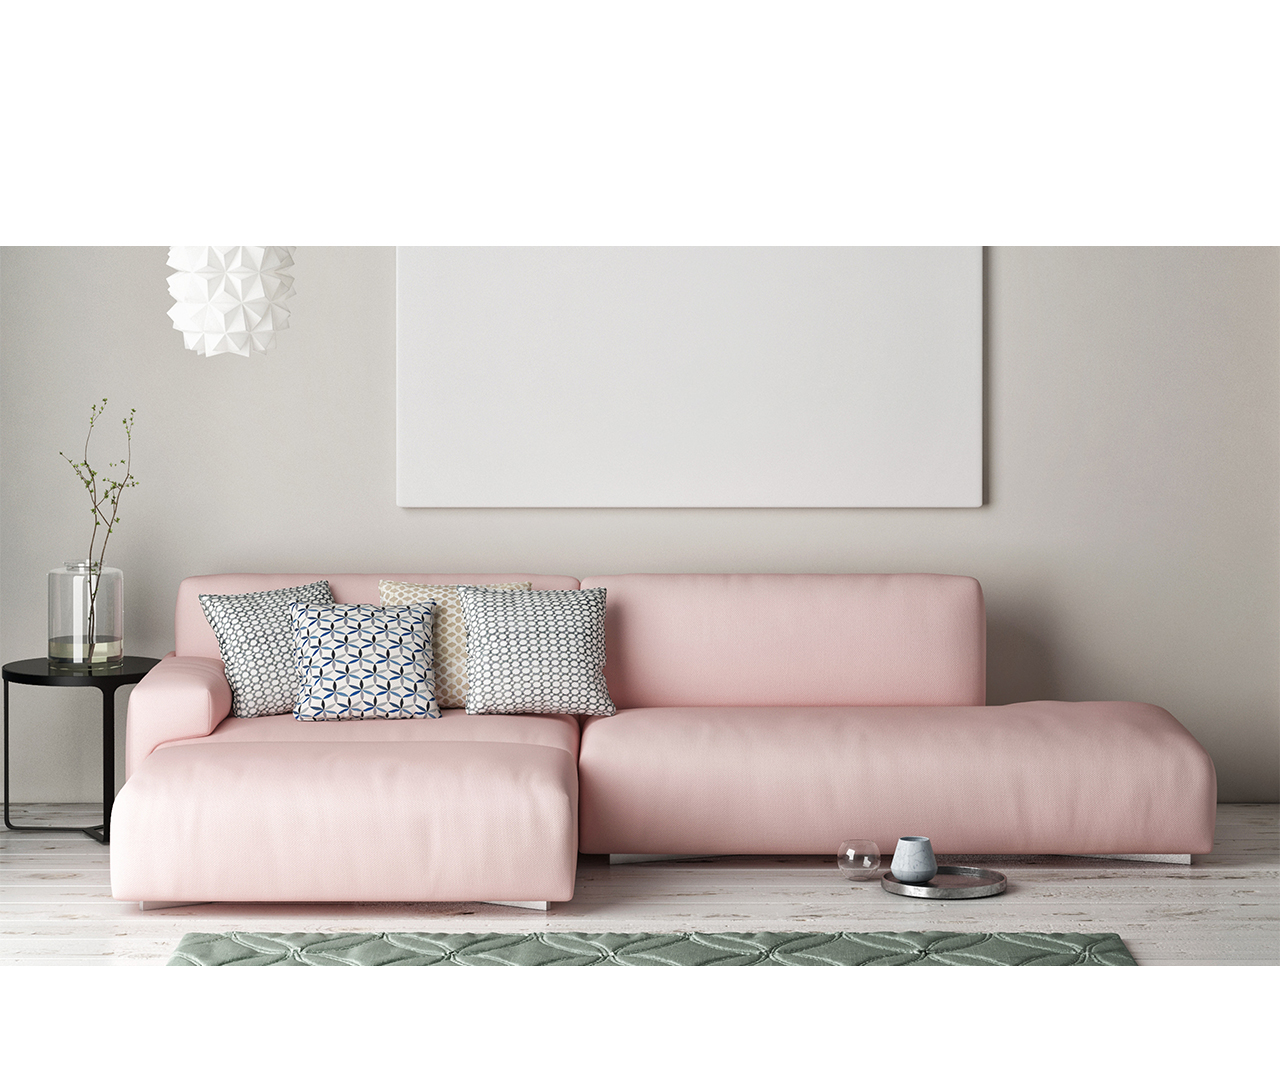 Born Furniture Pastel Pink sofa - B O R N